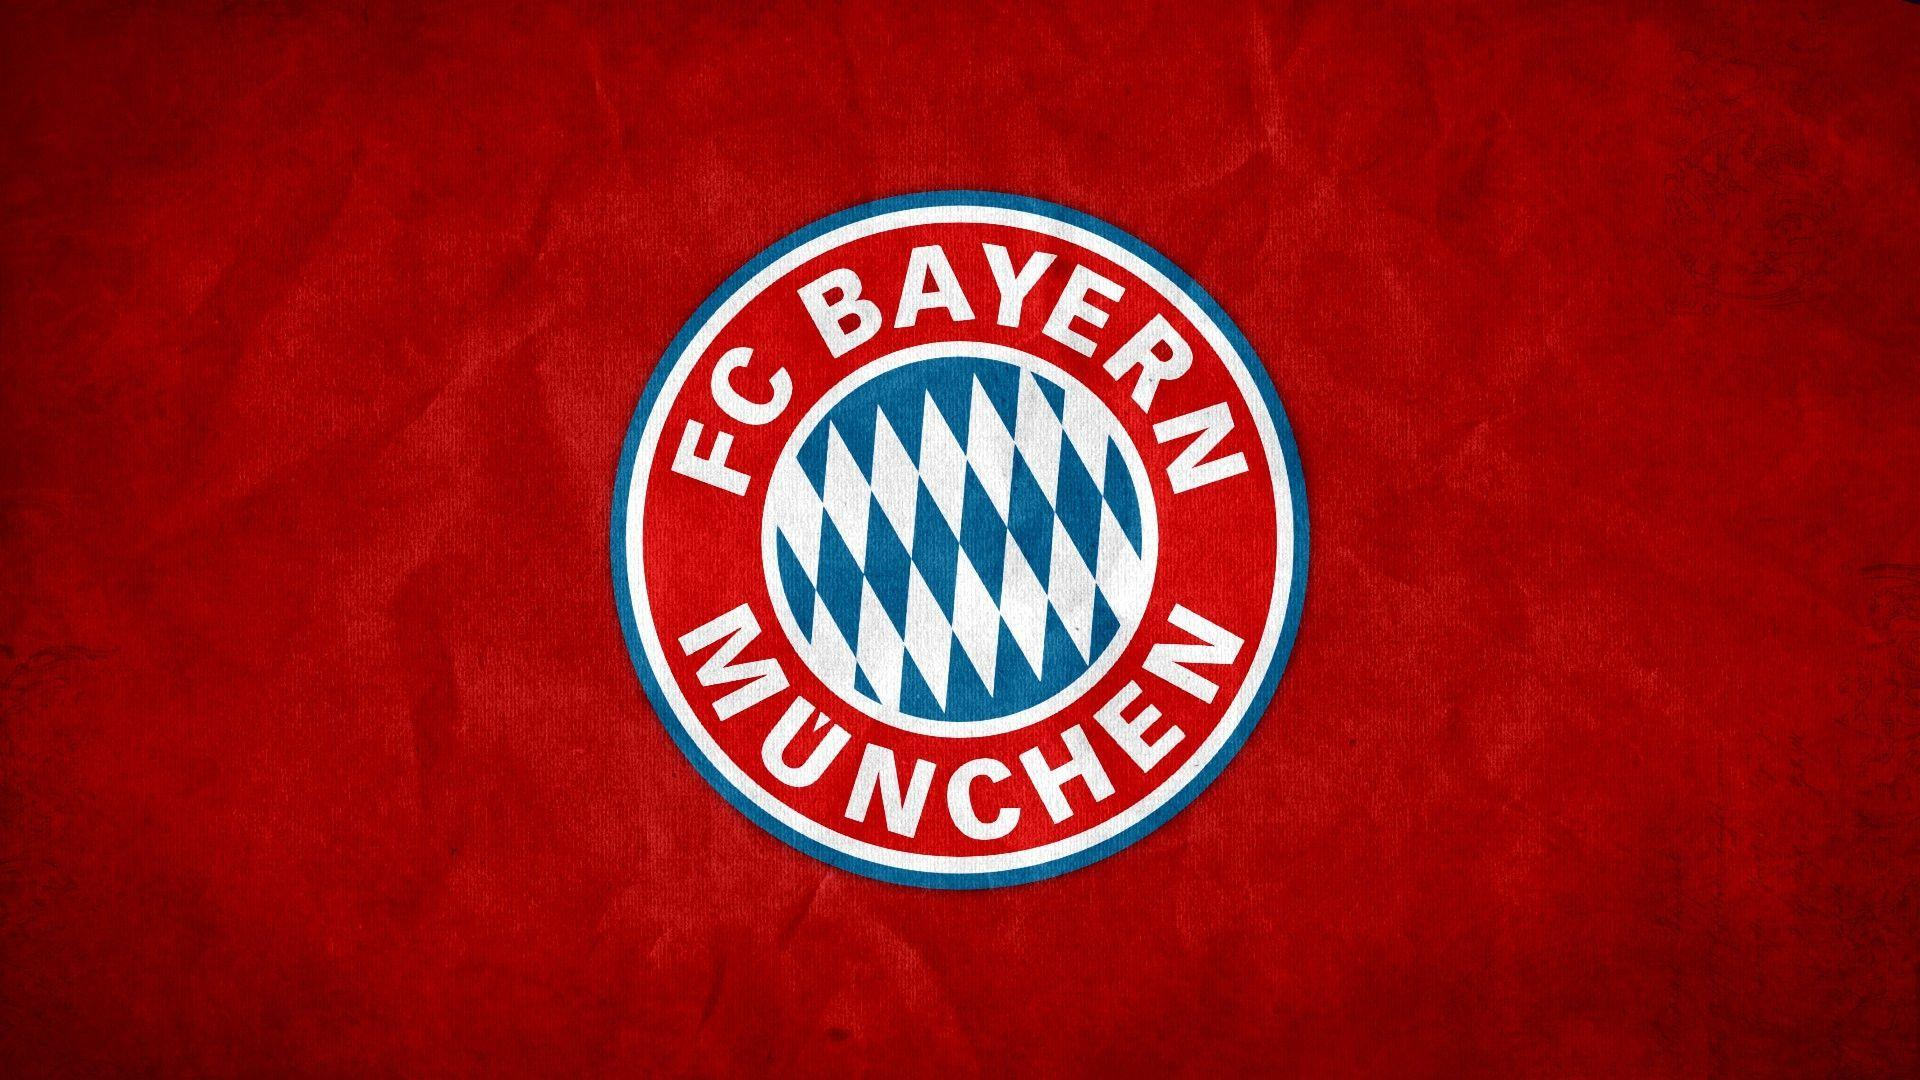 Bayern Munich Wallpaper and Windows 10 Theme | All for Windows 10 Free